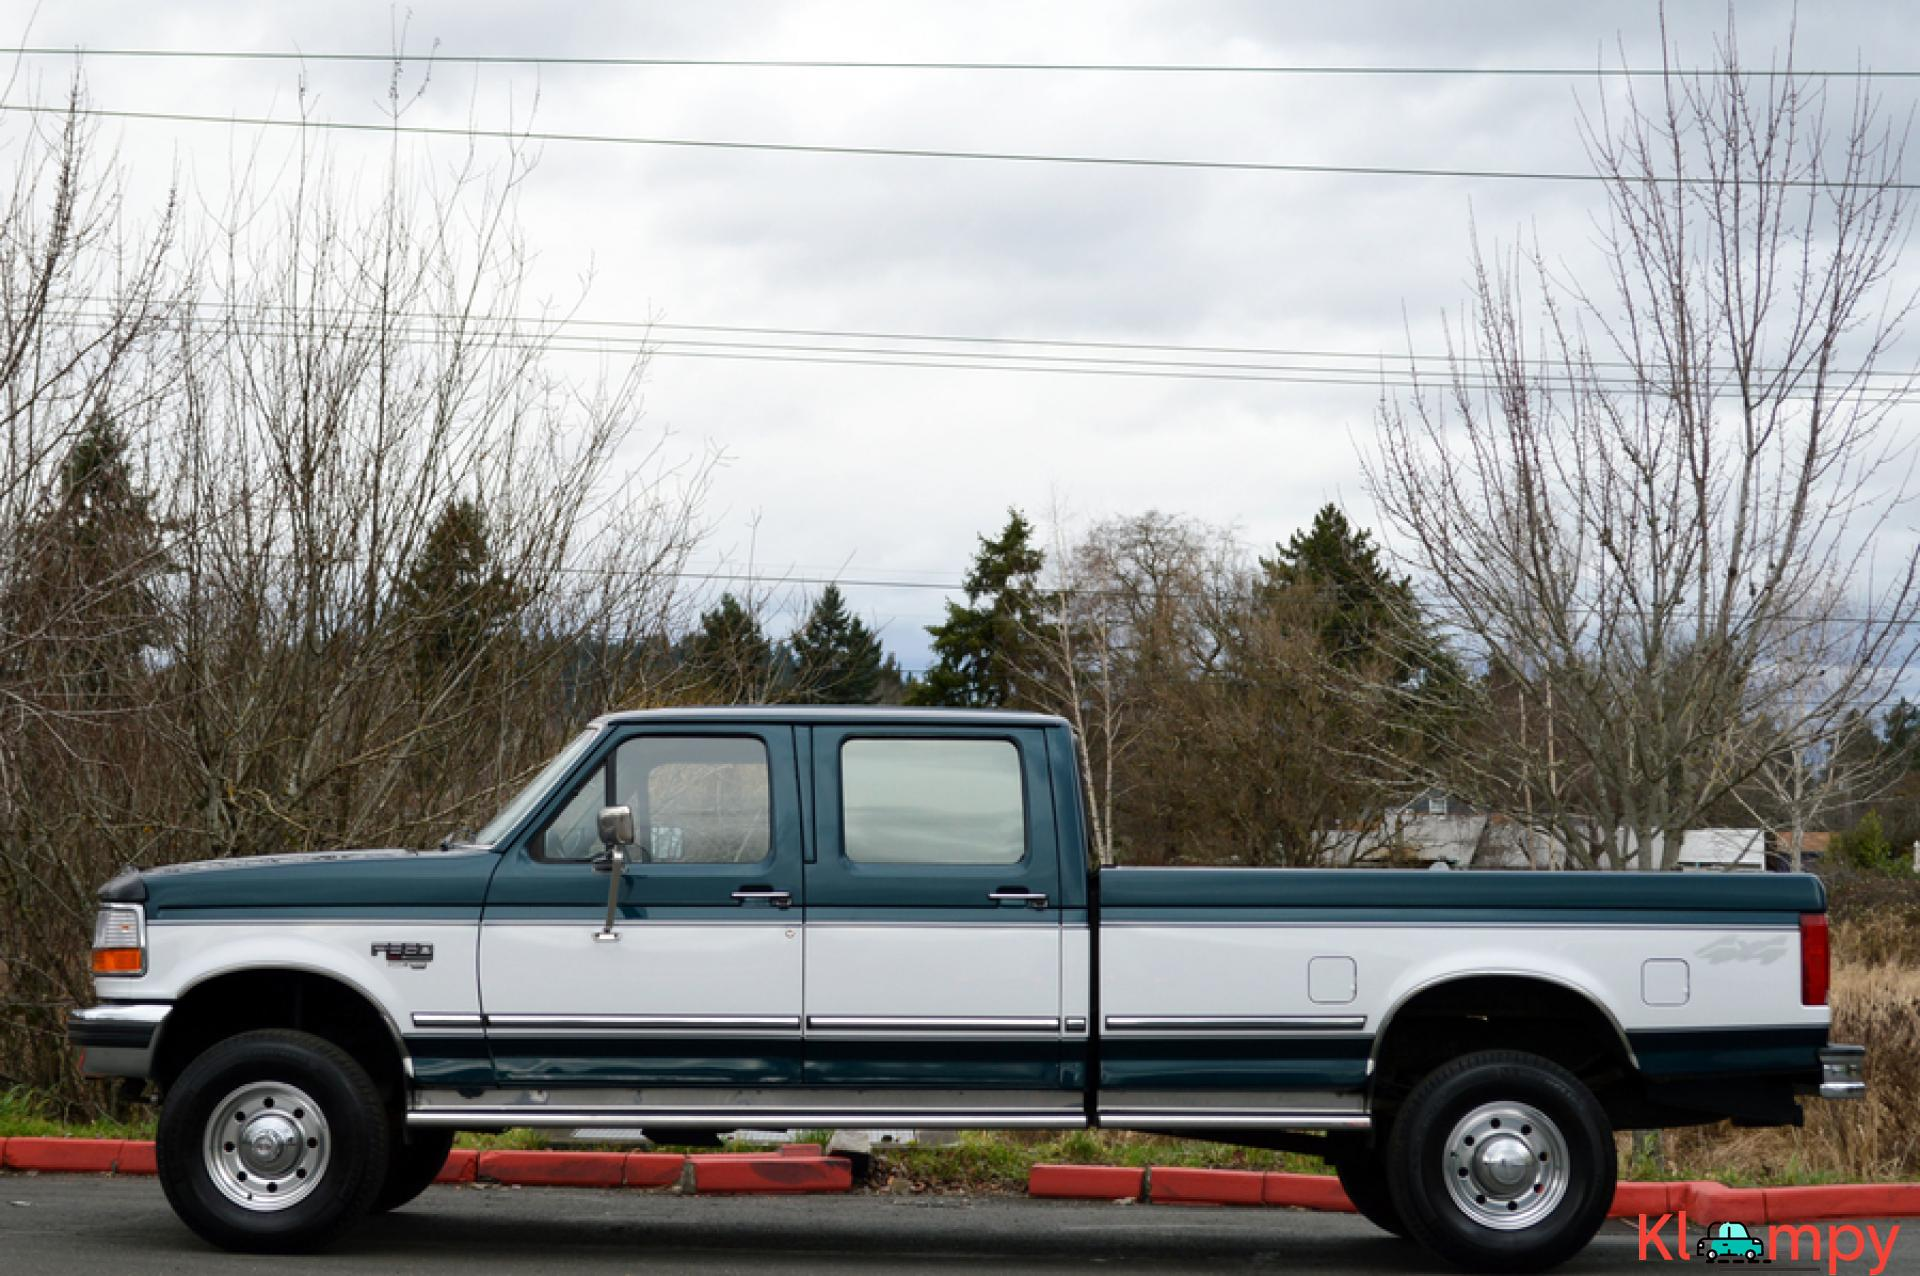 1997 FORD F-350 CREW CAB LONG BED 4WD 7.3L - 13/20